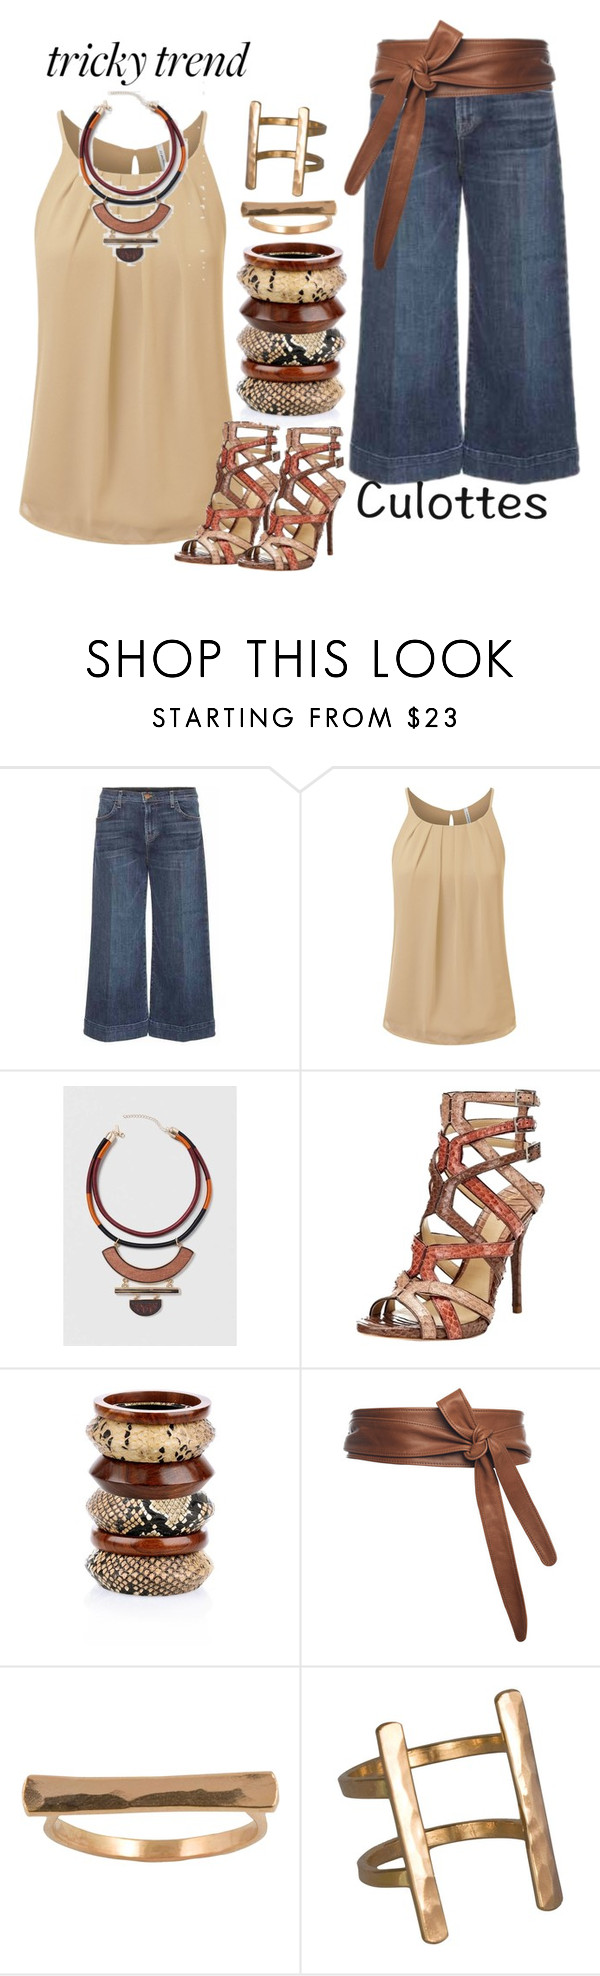 """""""Denim Culottes"""" by hope-houston ❤ liked on Polyvore featuring J Brand, Topshop, B Brian Atwood, River Island, Baukjen, IJA, TrickyTrend and culottes"""